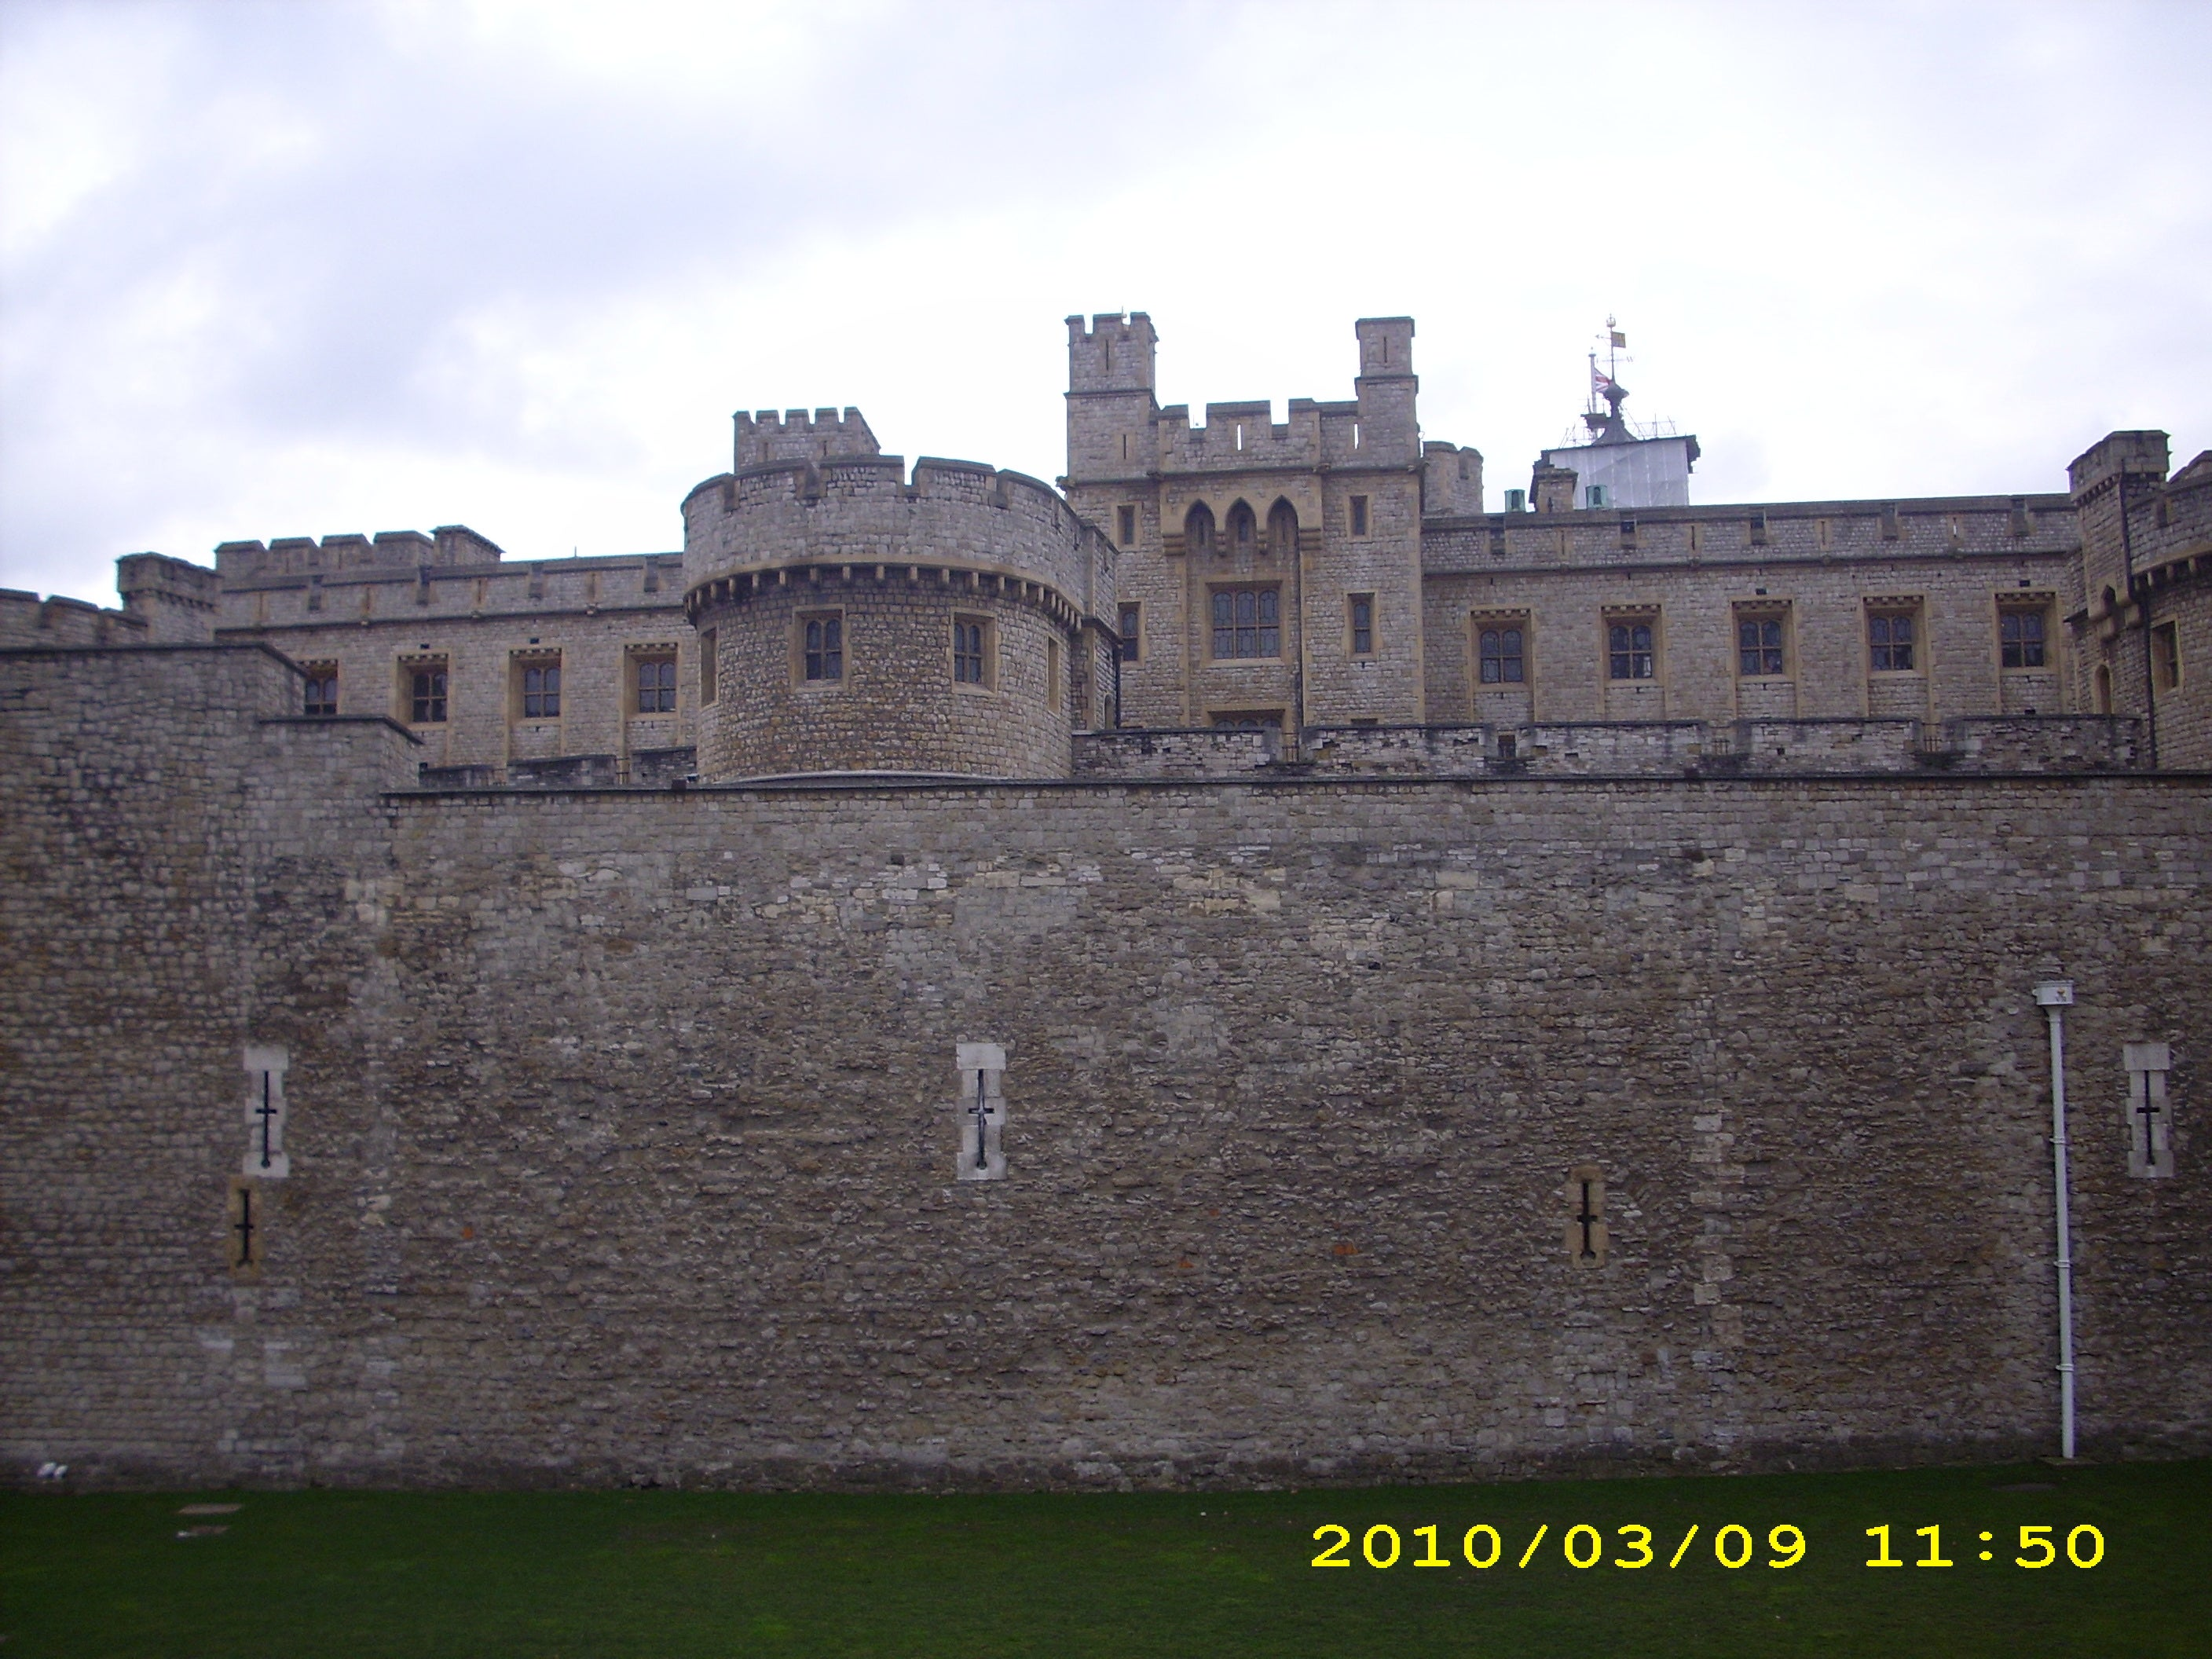 Foso en Castillo de Windsor